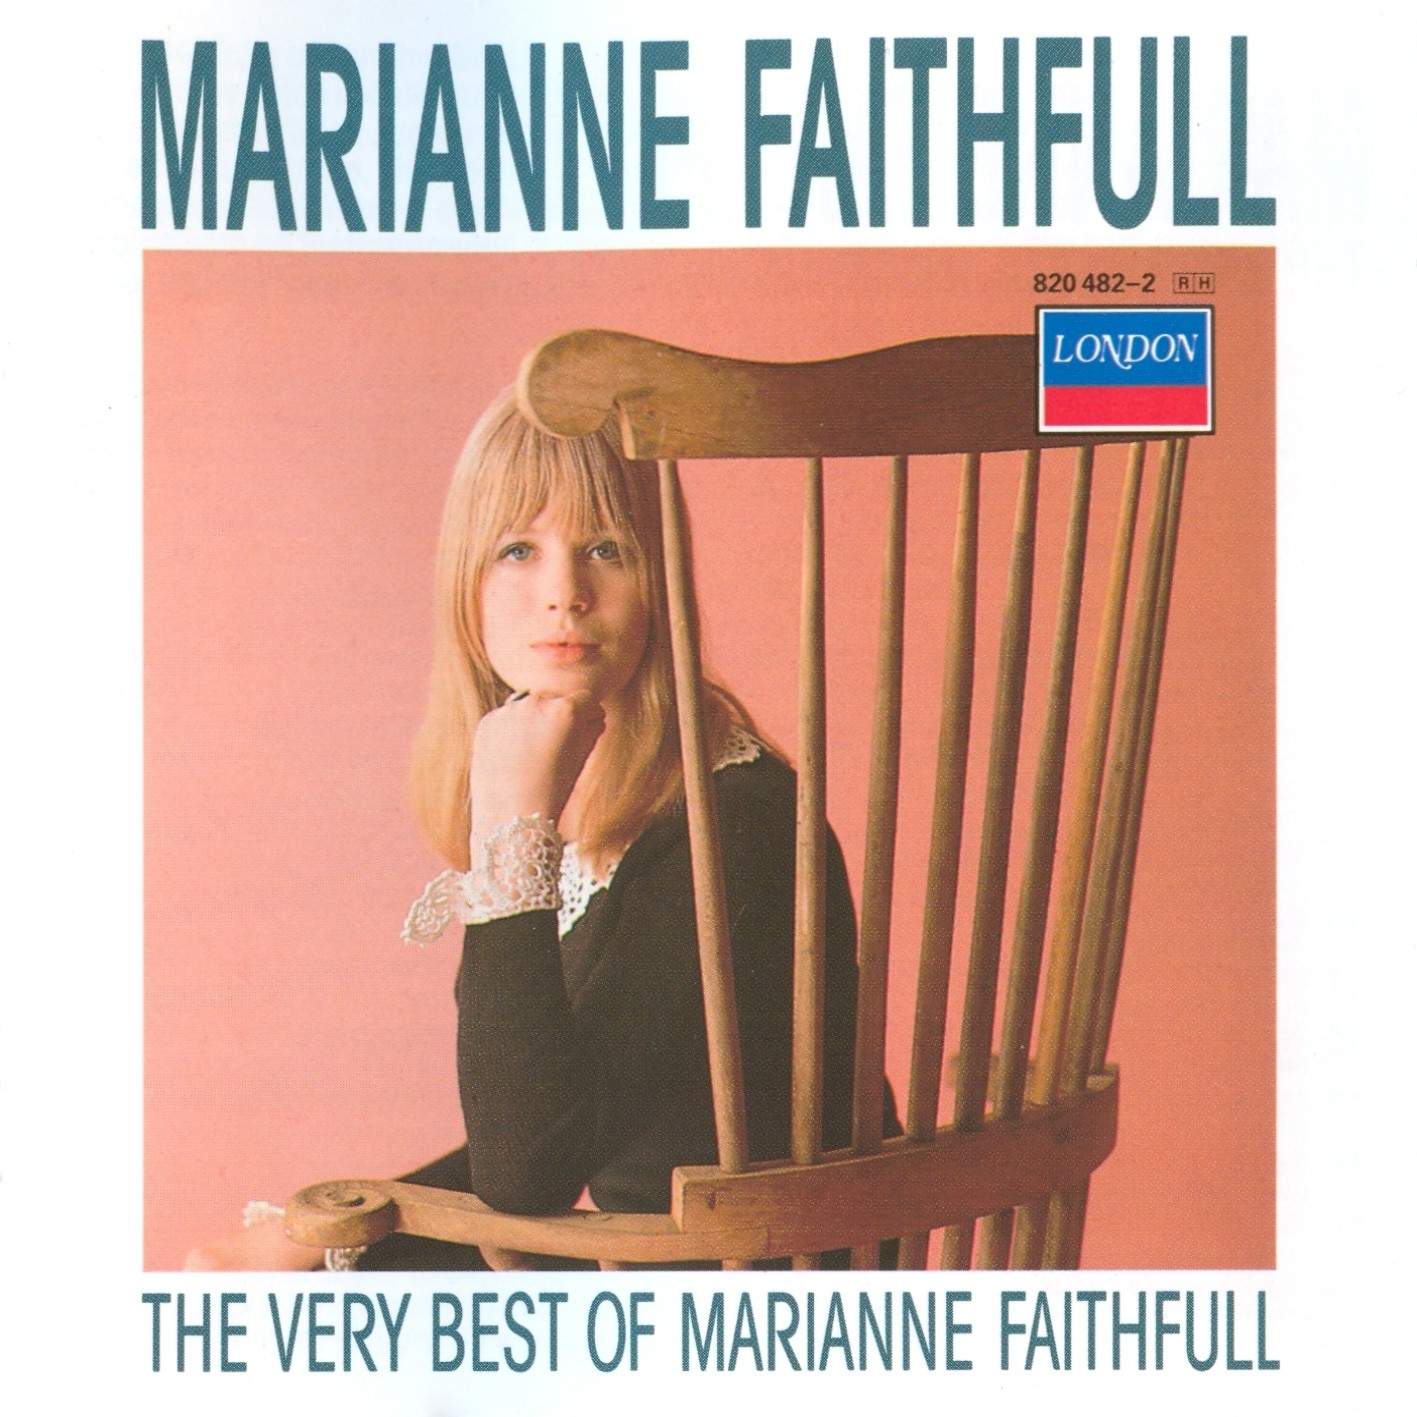 the_very_best_of_marianne_faithfull.jpg